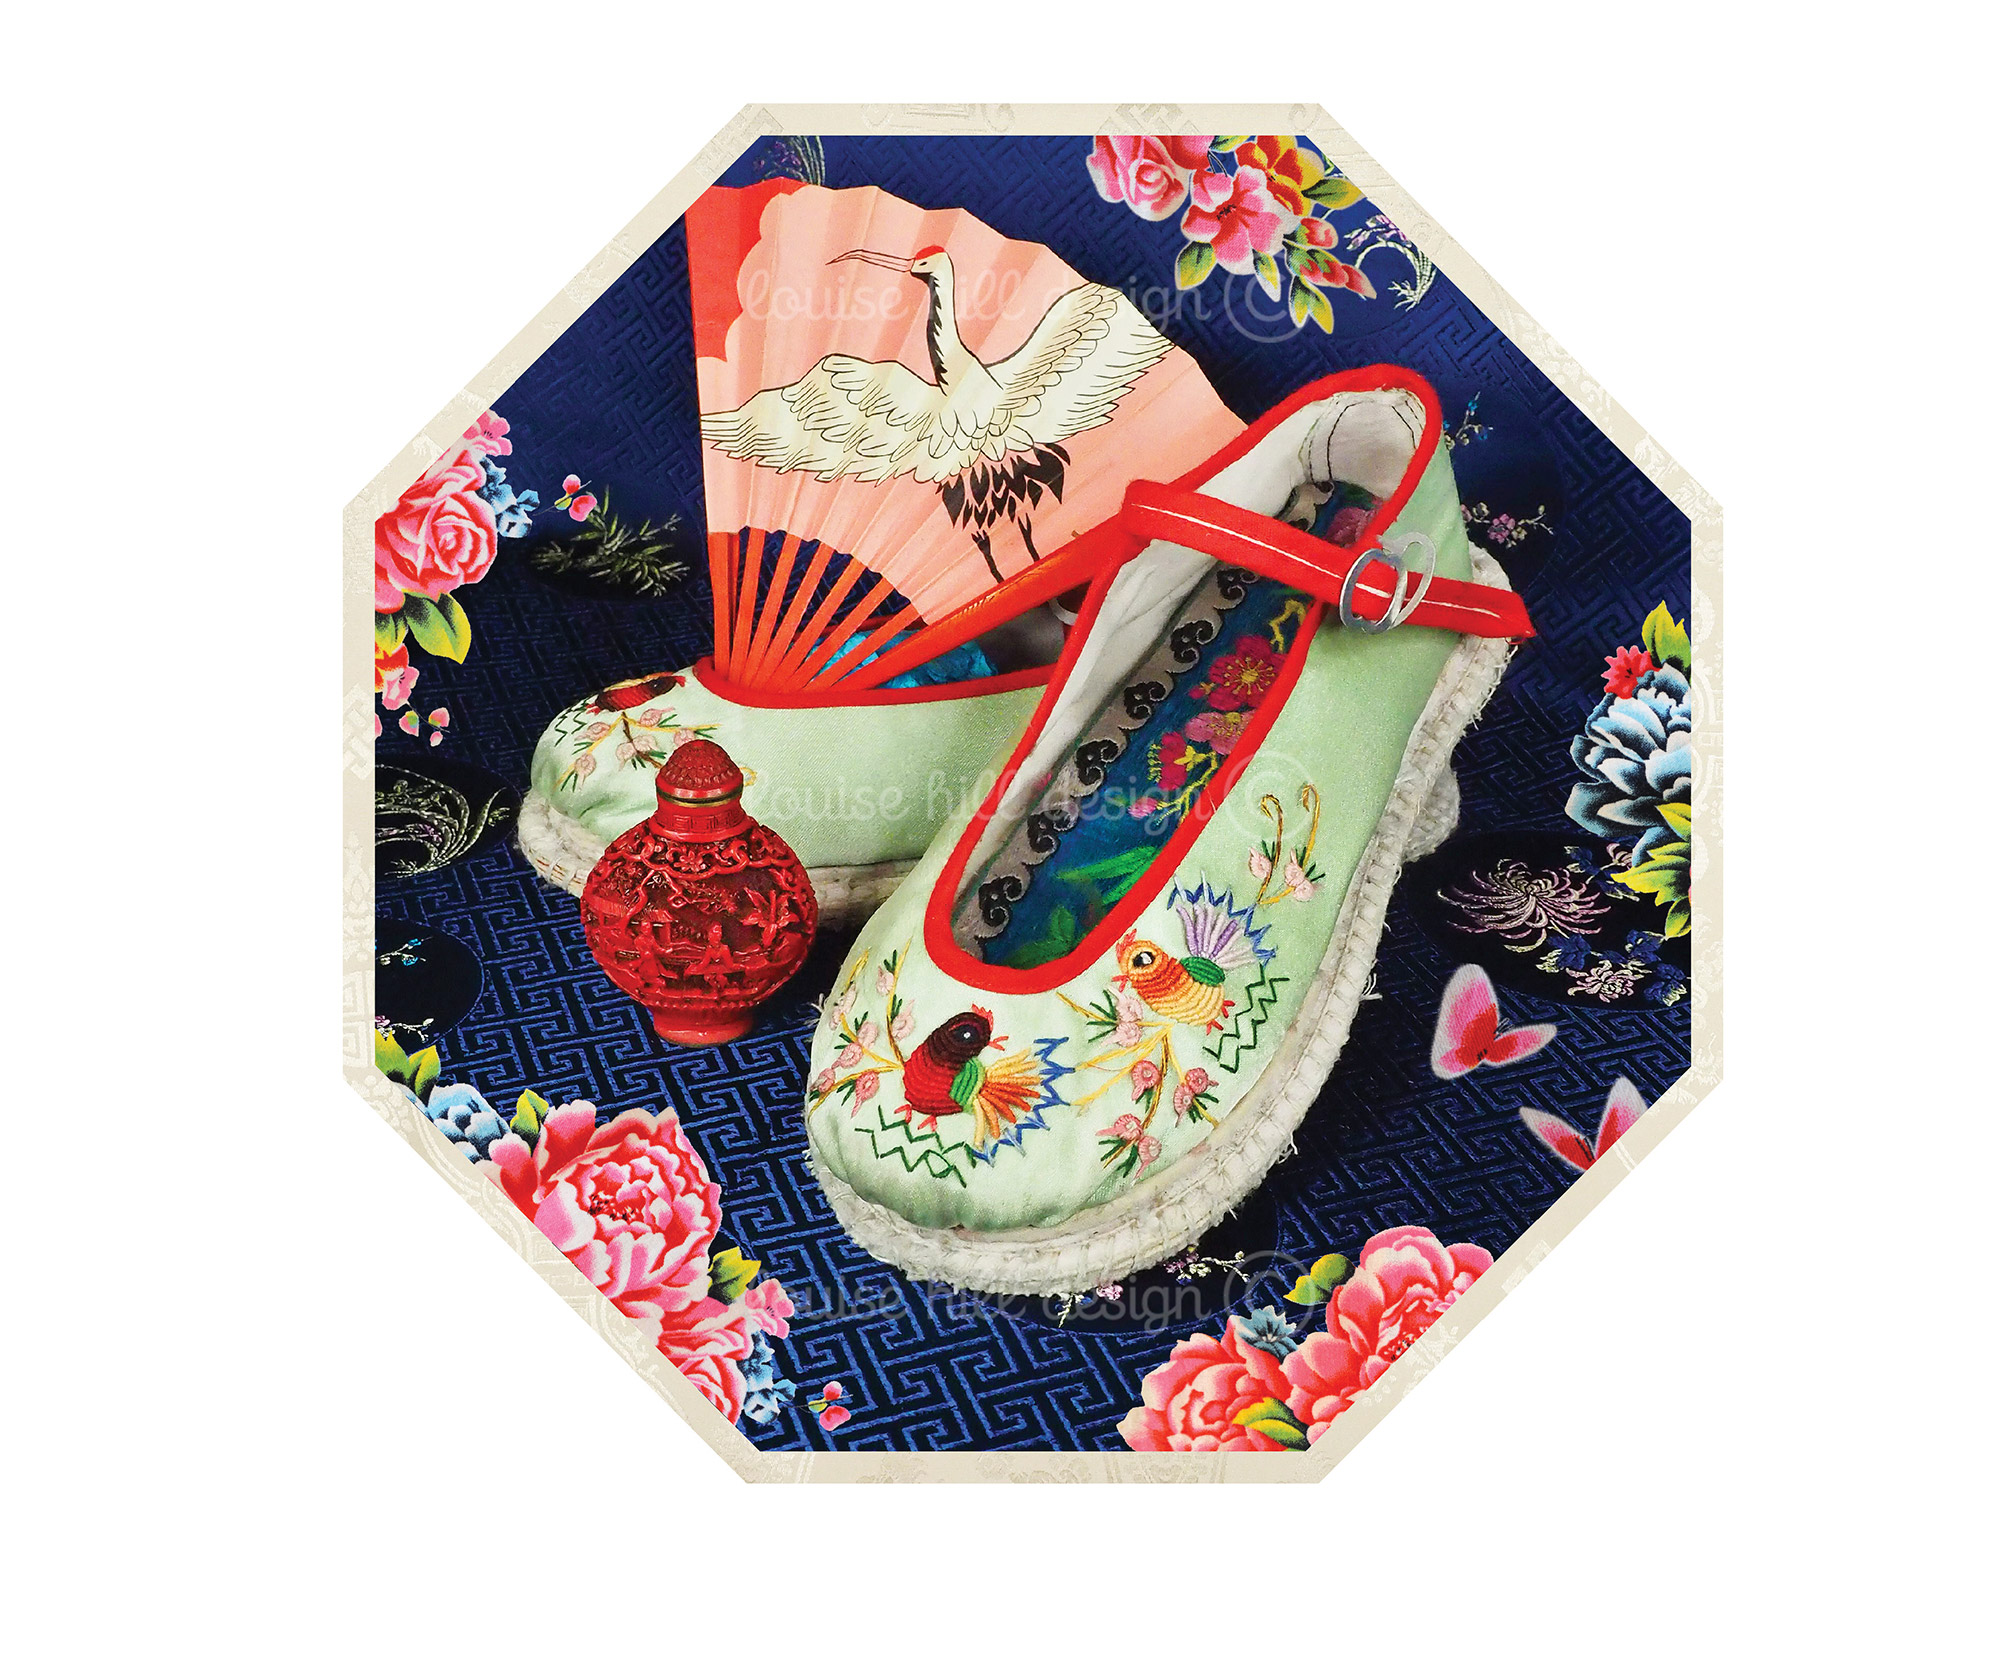 LITTLE-CHINESE-SHOES